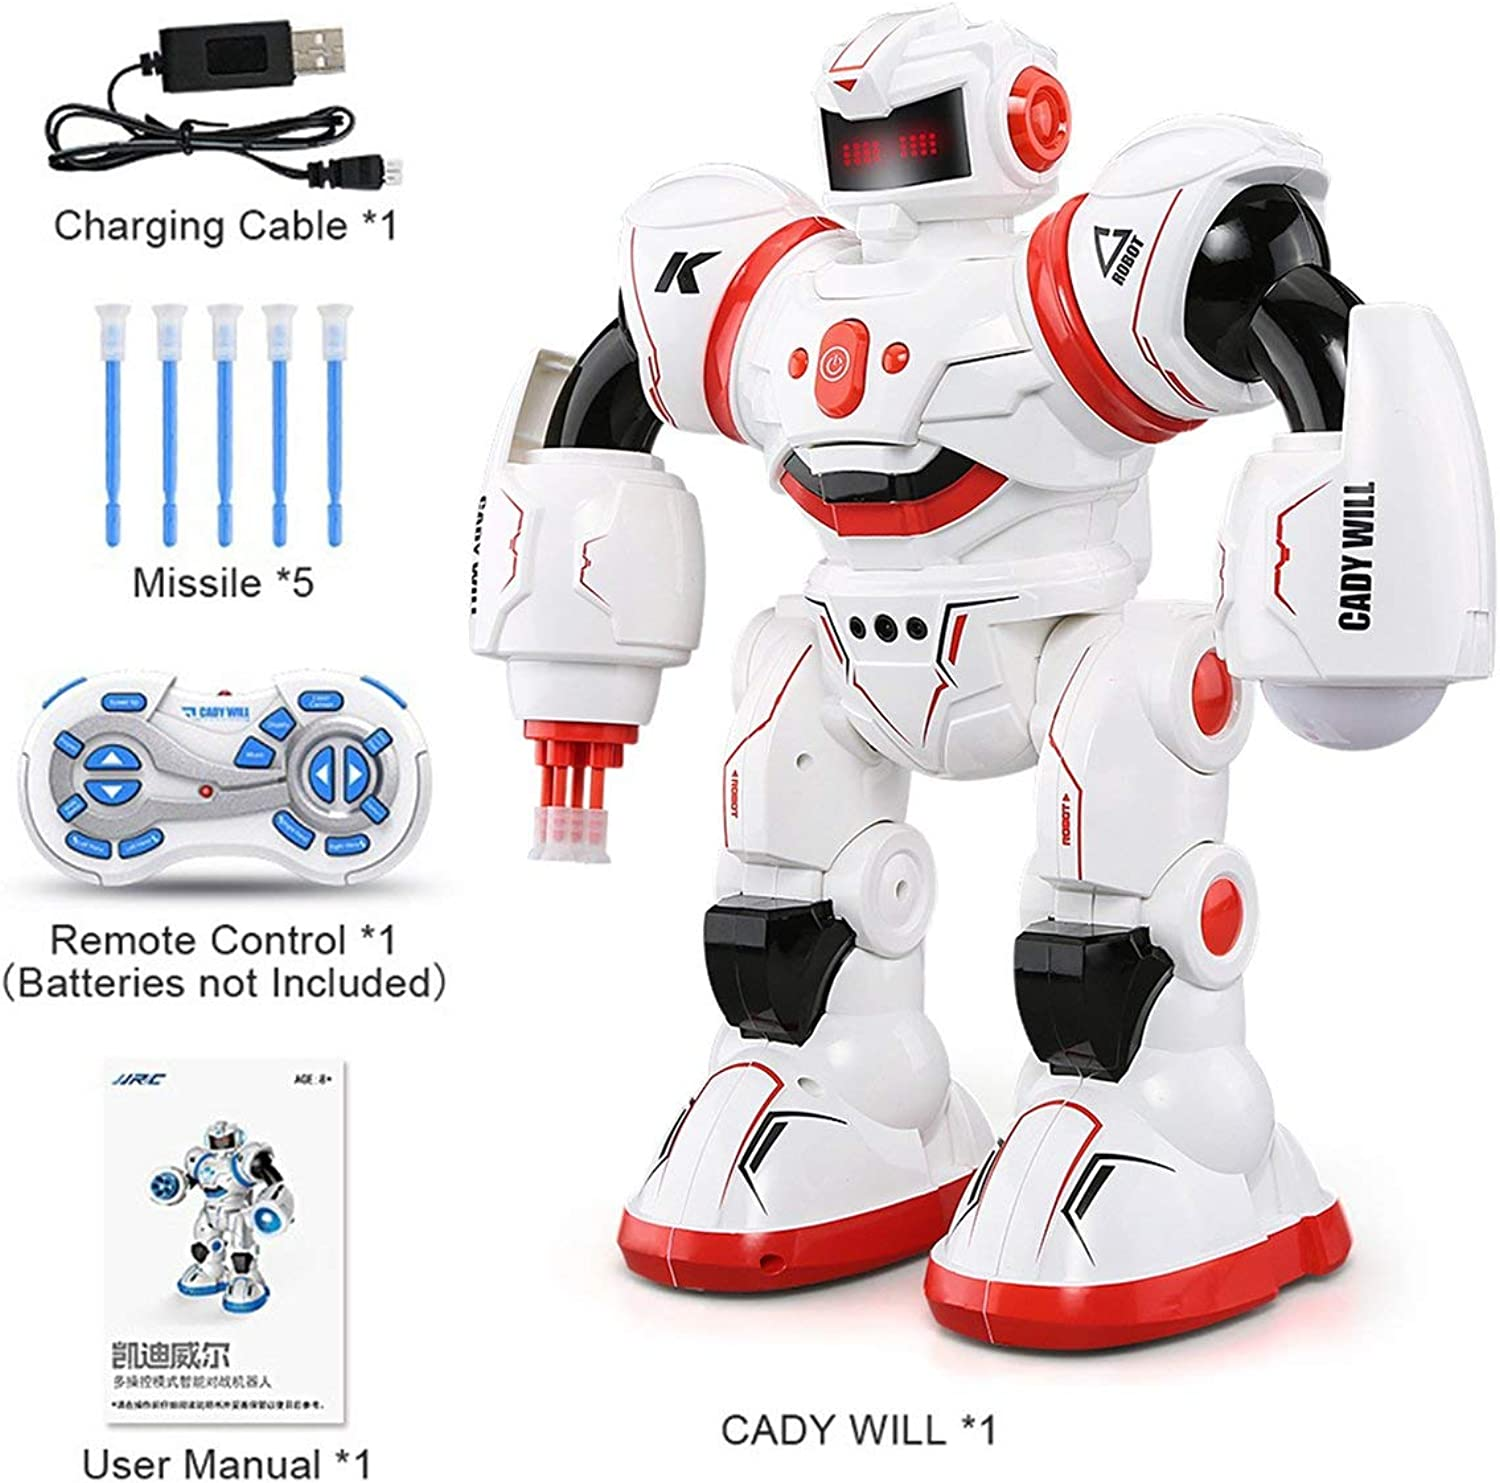 JJRC R3 Programmable Defender Remote Control Early Education Intelligent Robot Multi Funtion Musical Dancing RC Toy Kids Gift Rone Life